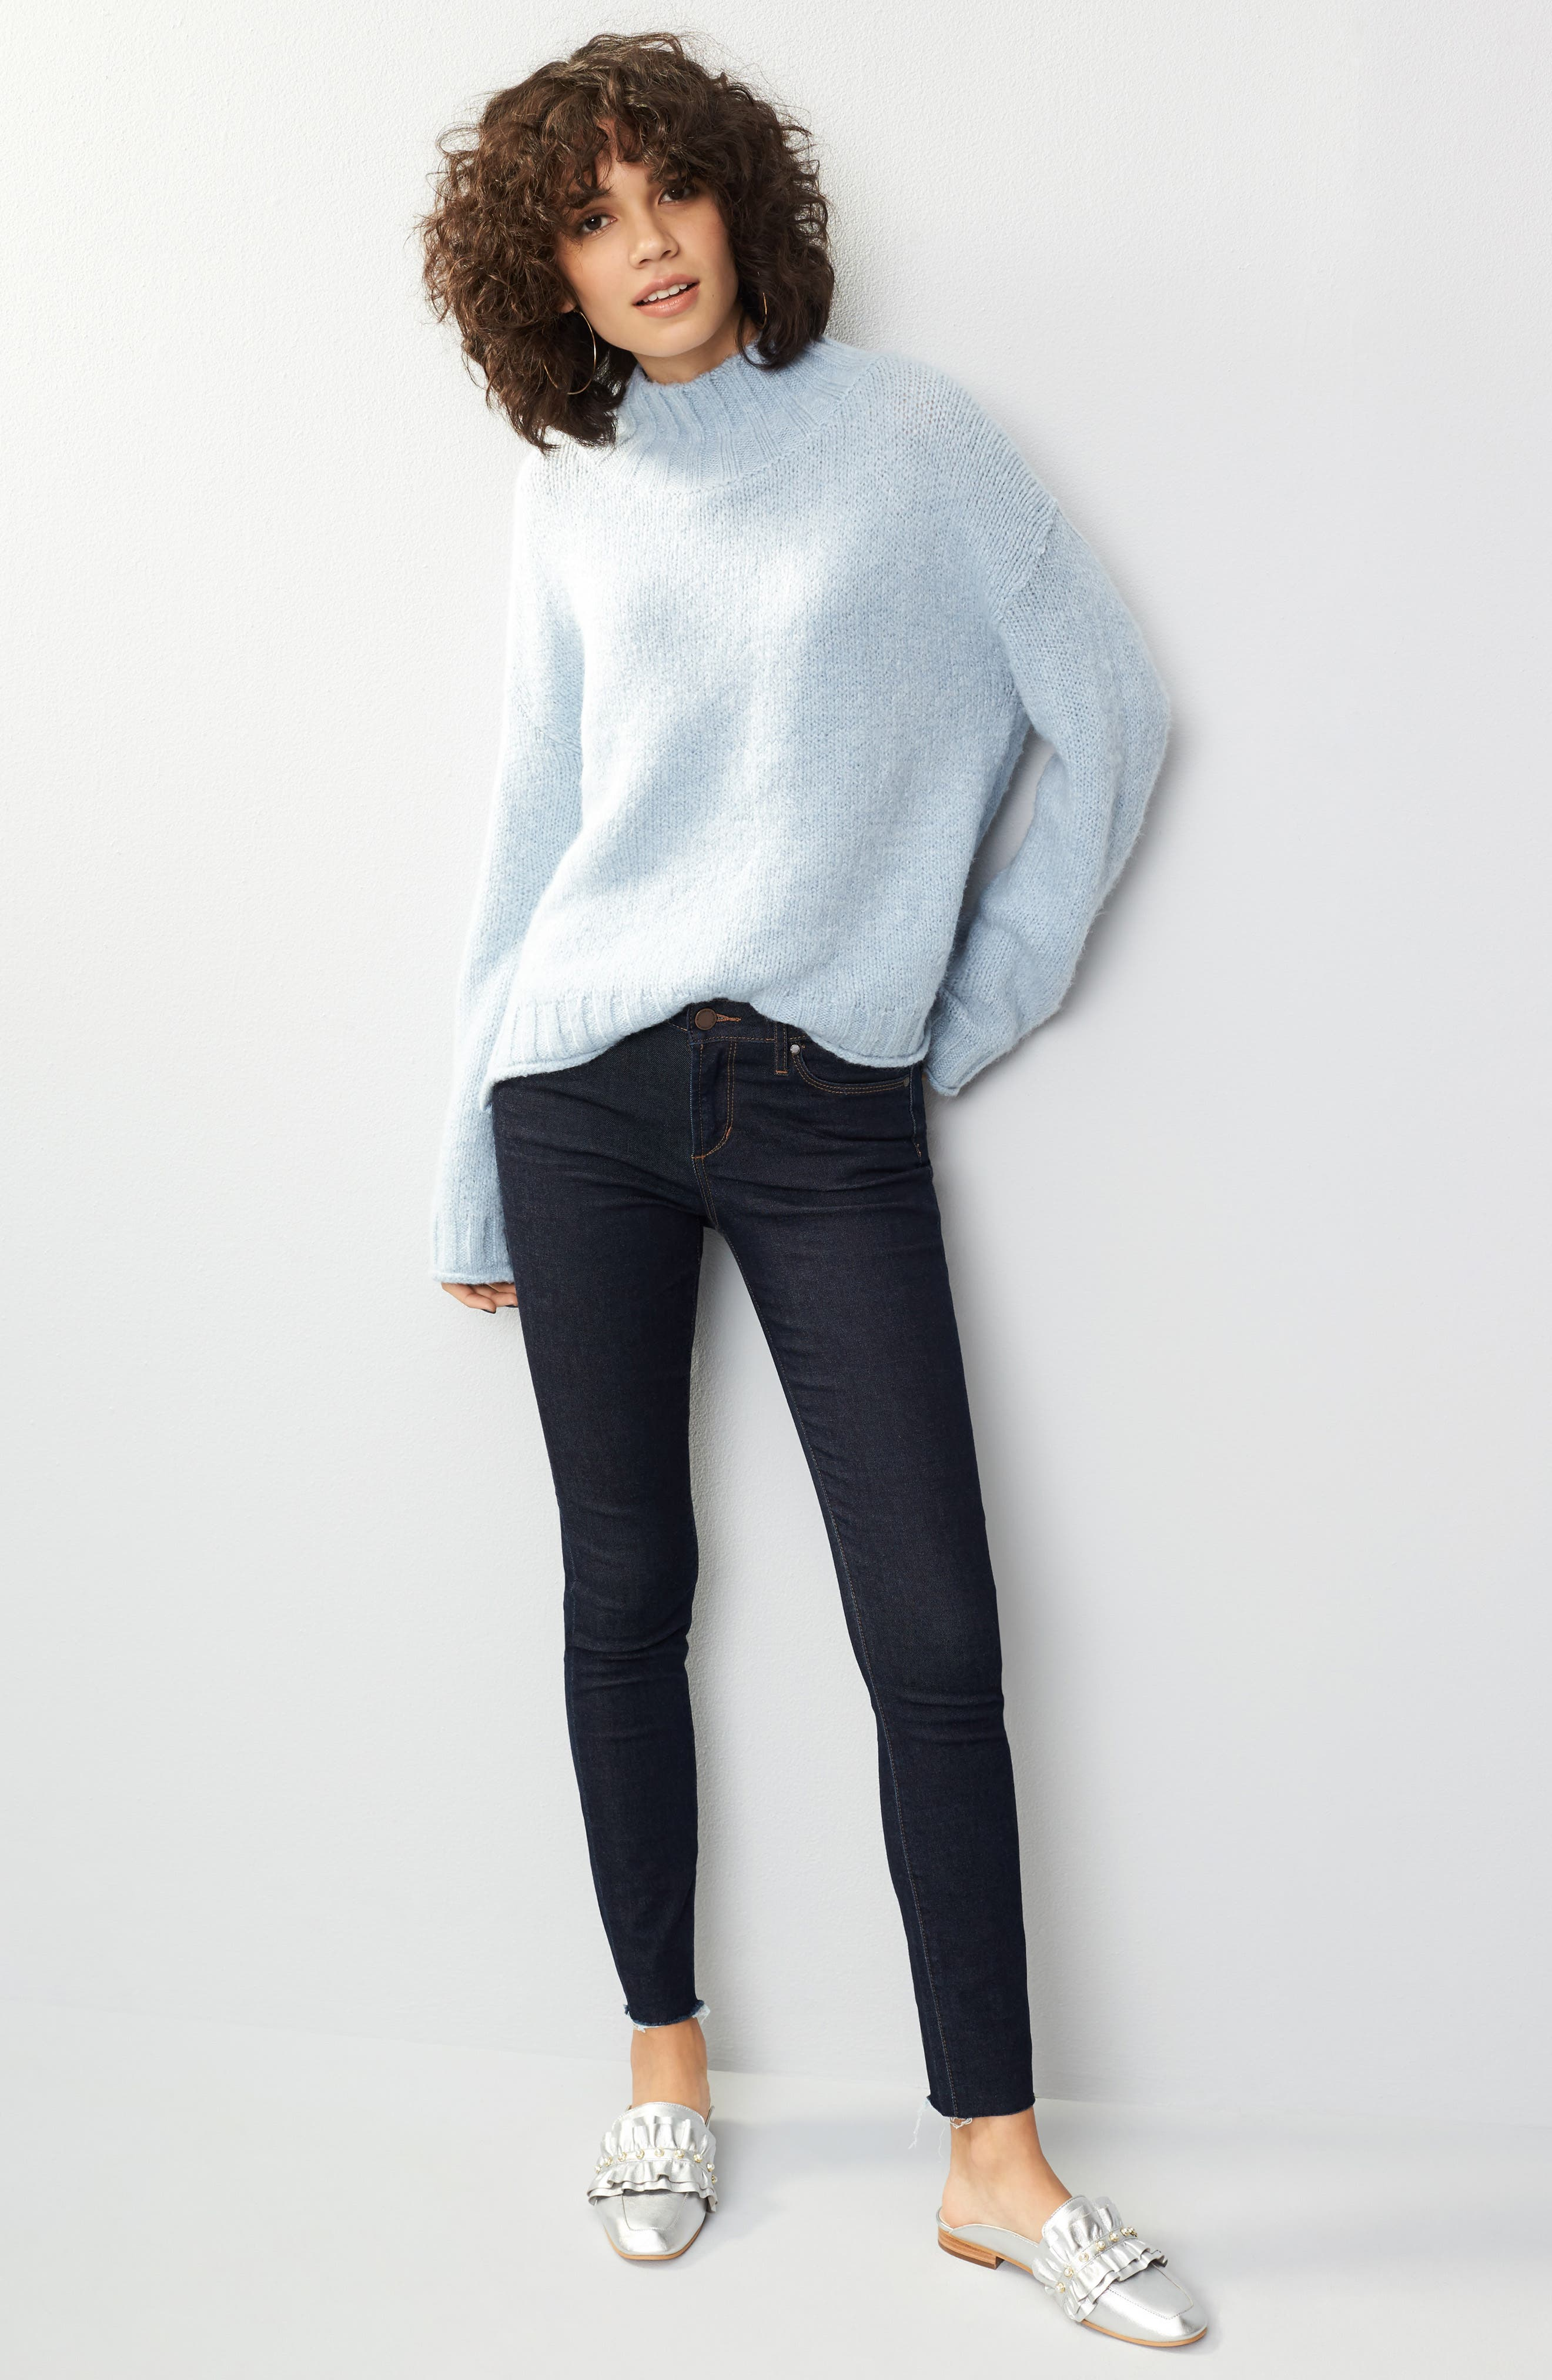 Sarah Ankle Skinny Jeans,                             Alternate thumbnail 7, color,                             495